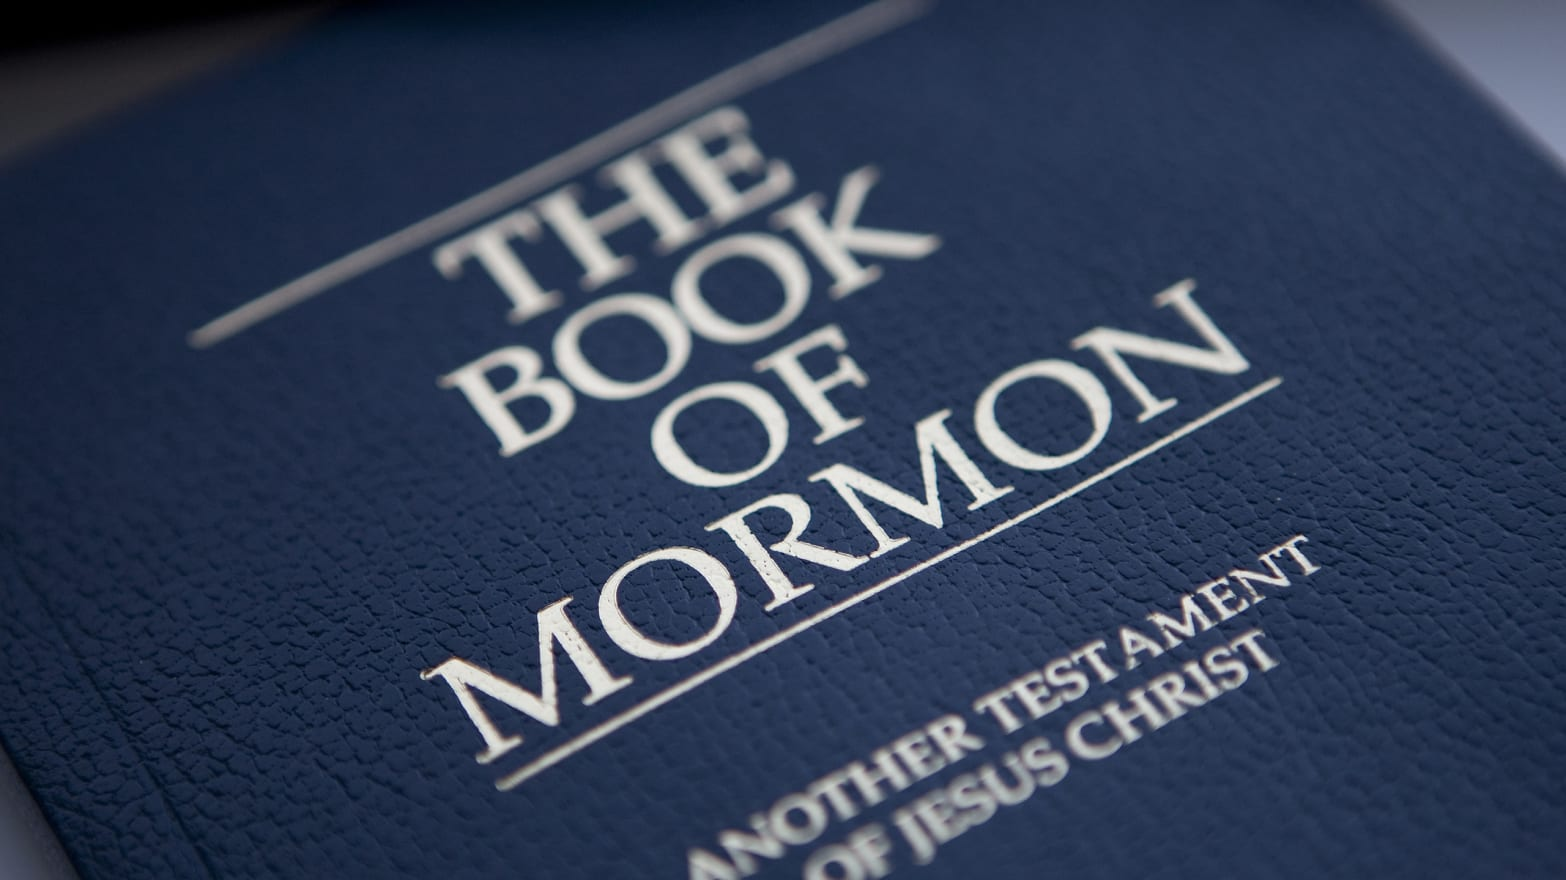 Was 'The Book of Mormon' a Great American Novel?